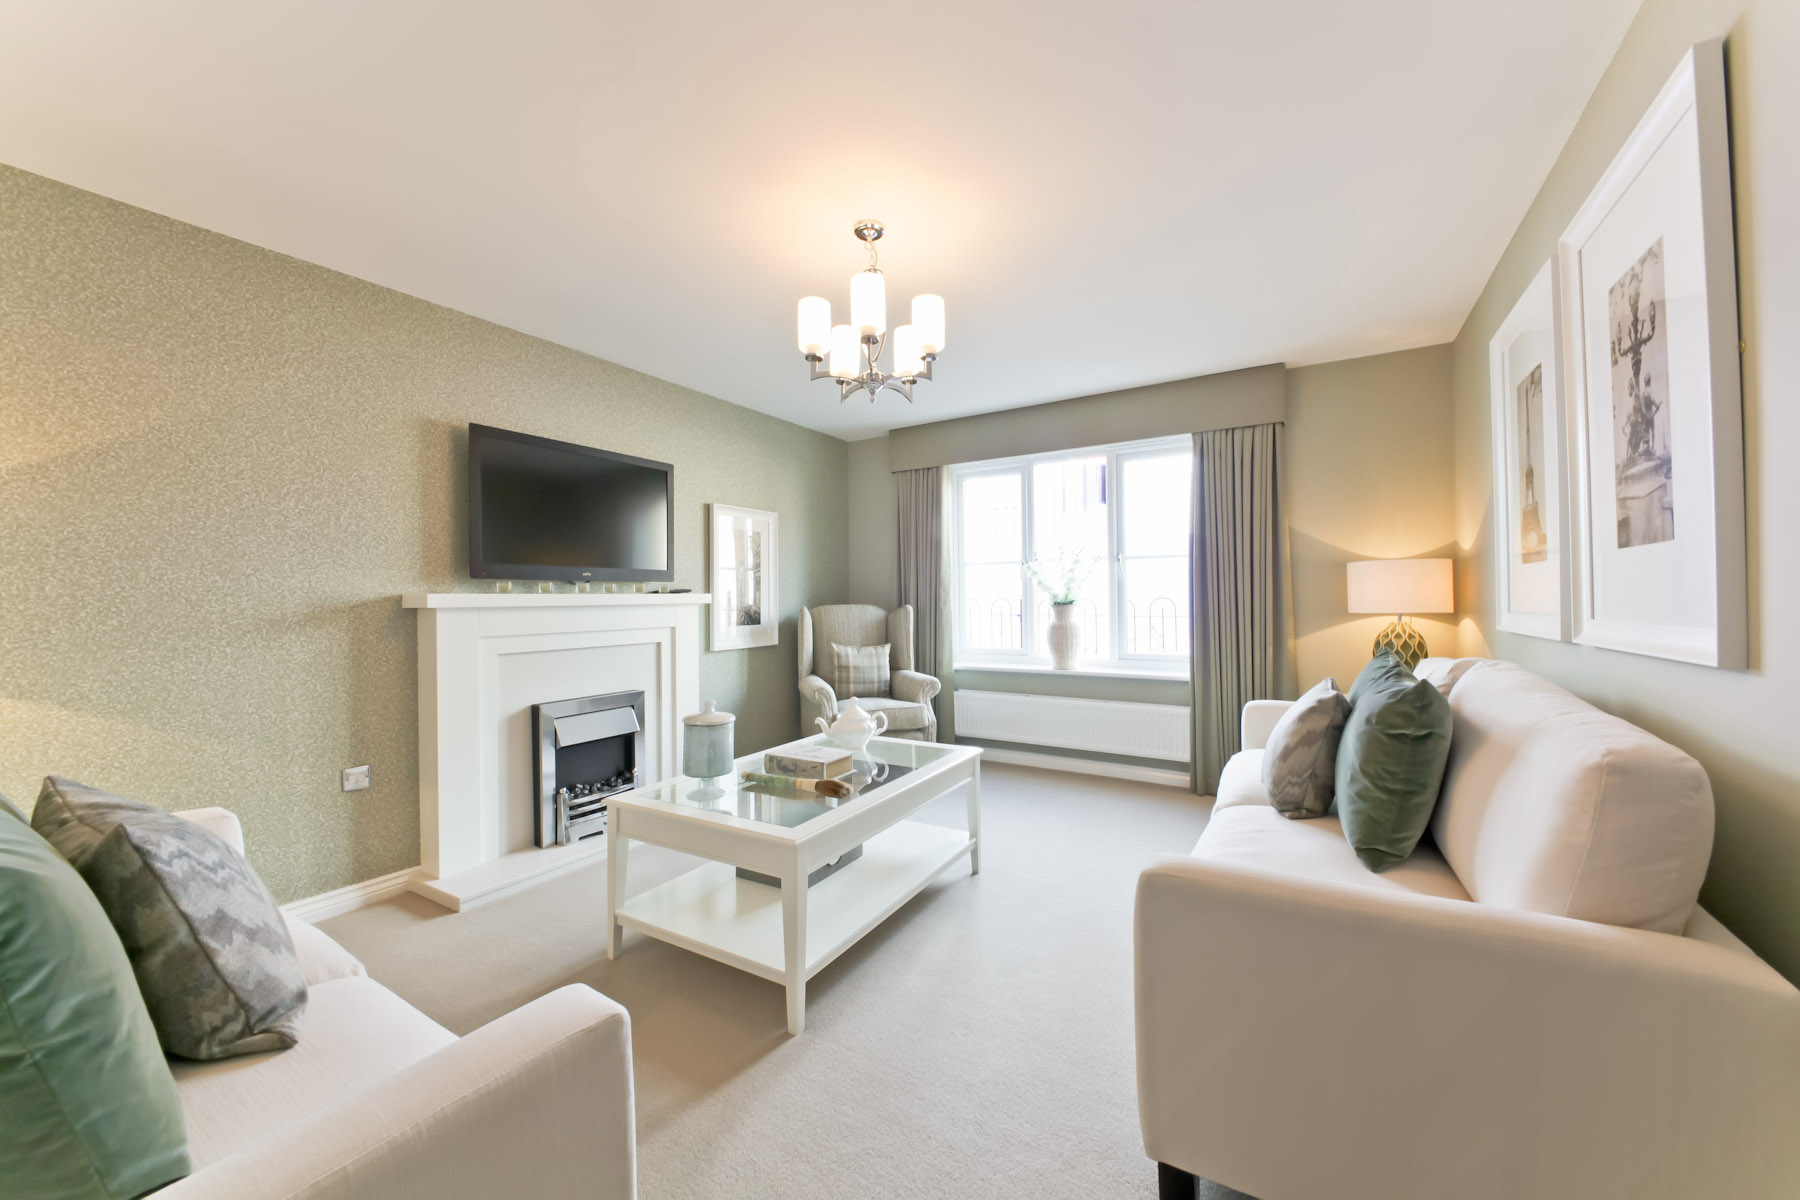 TW Exeter - Sherford - The Birch example living room